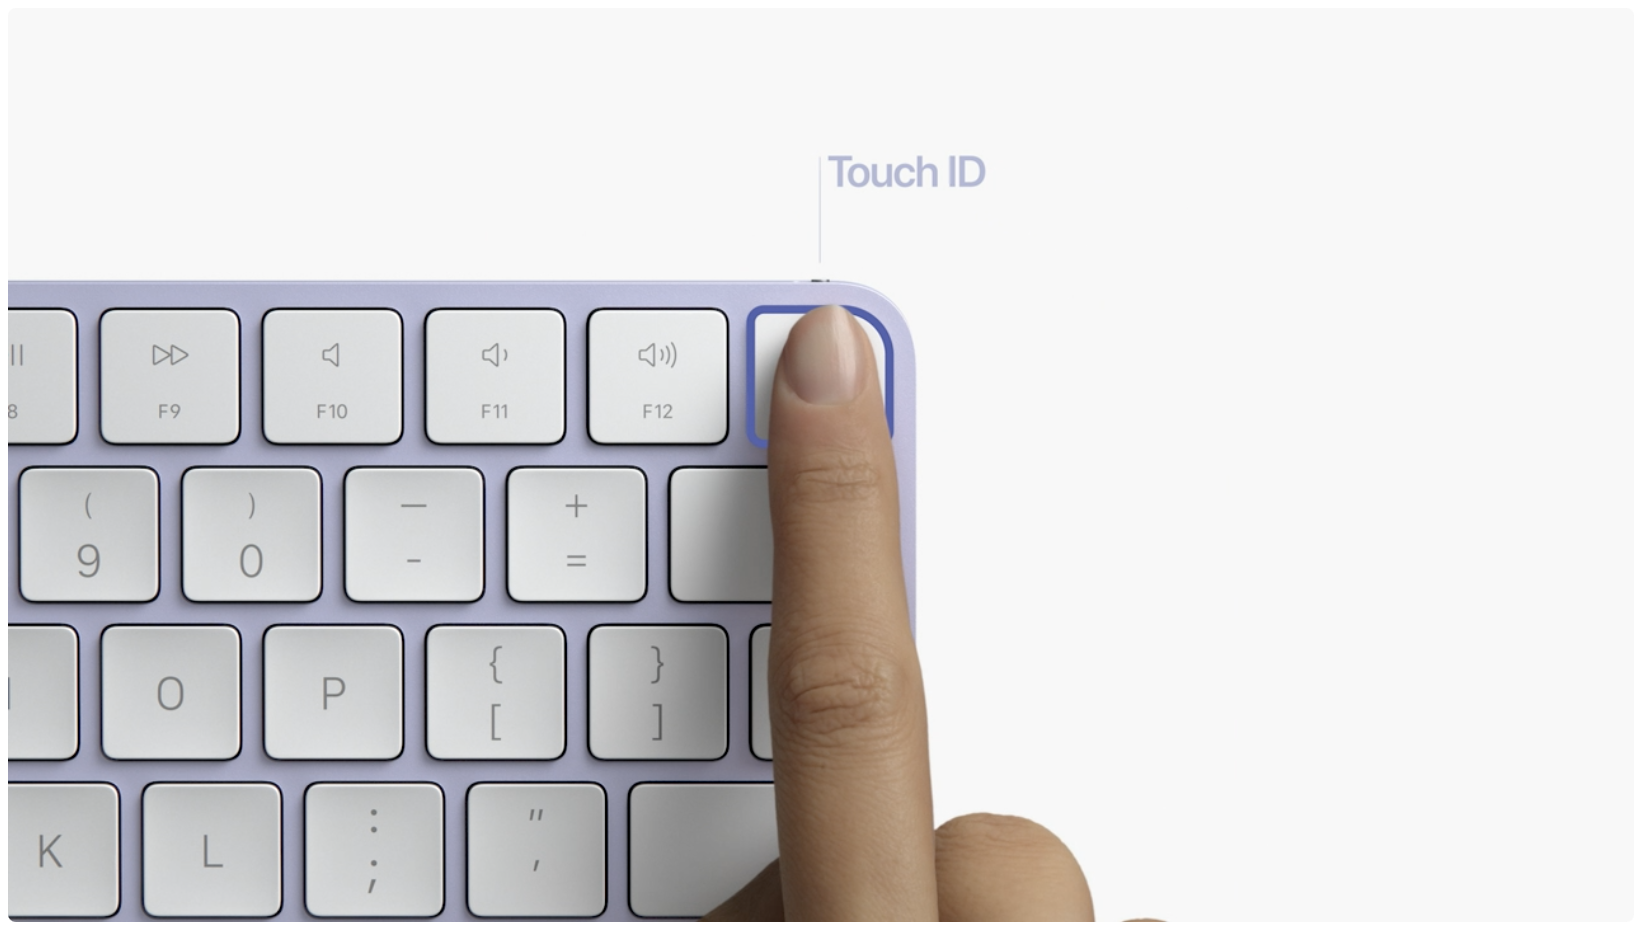 Apple's promotional graphic showing the iMac's new Magic Keyboard in purple with a female index finger resting on Touch ID